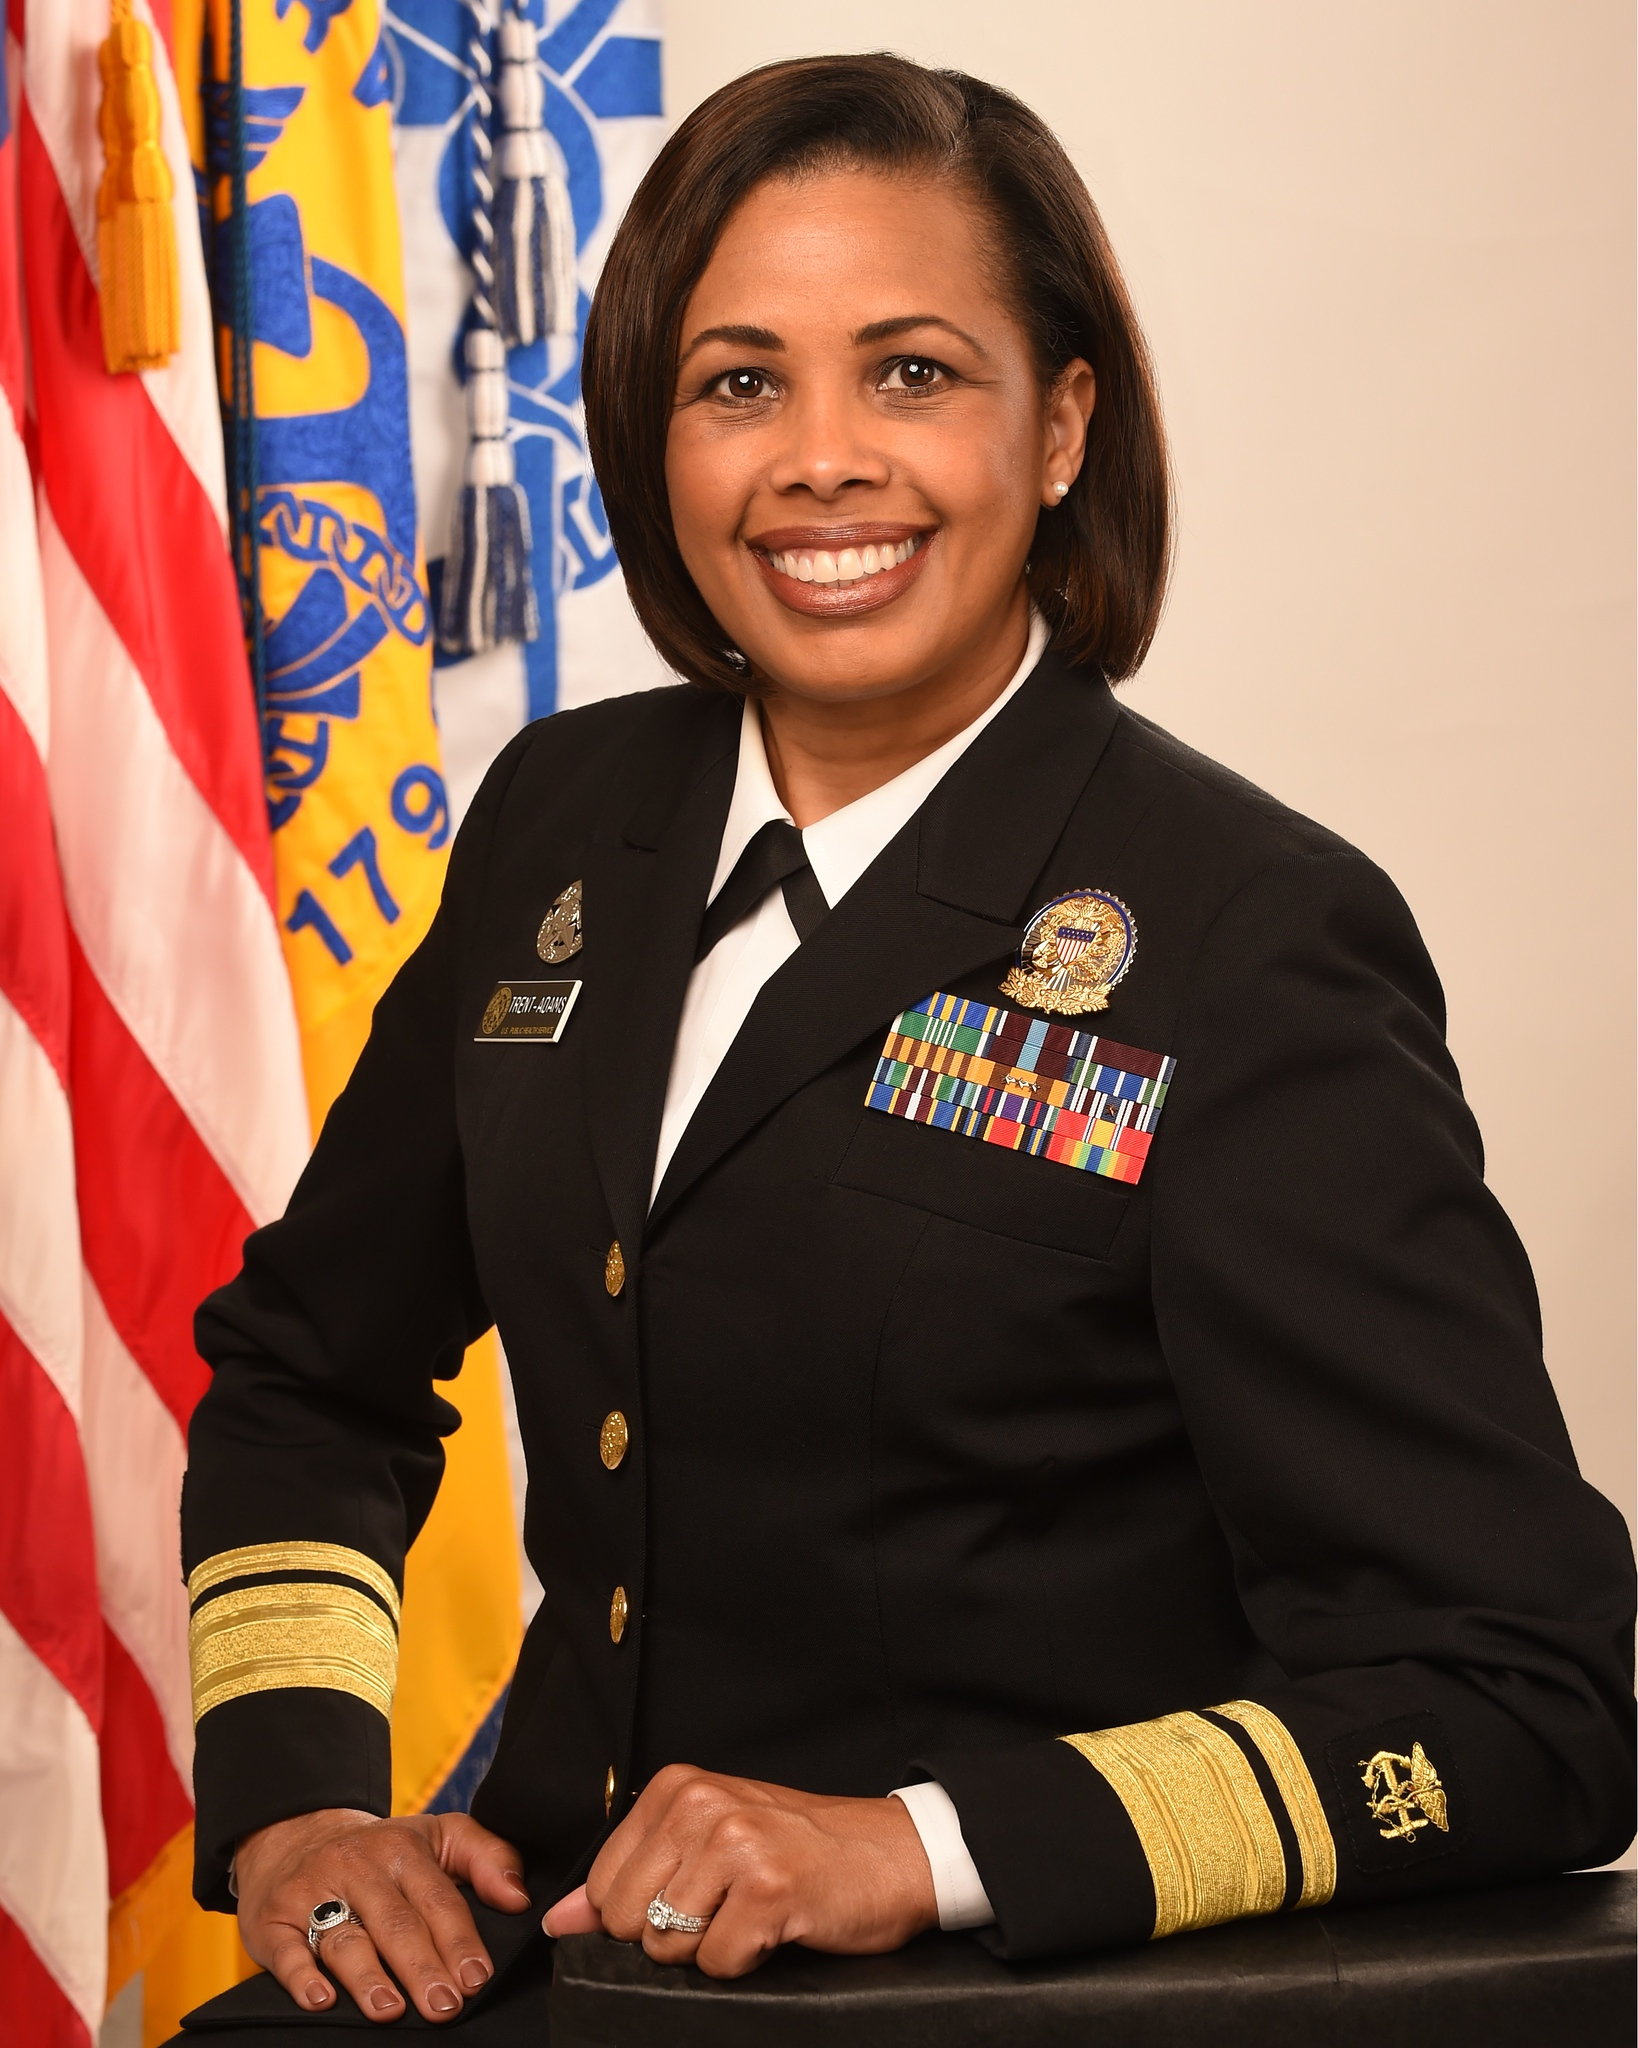 U.S. Deputy Surgeon General to speak April 6